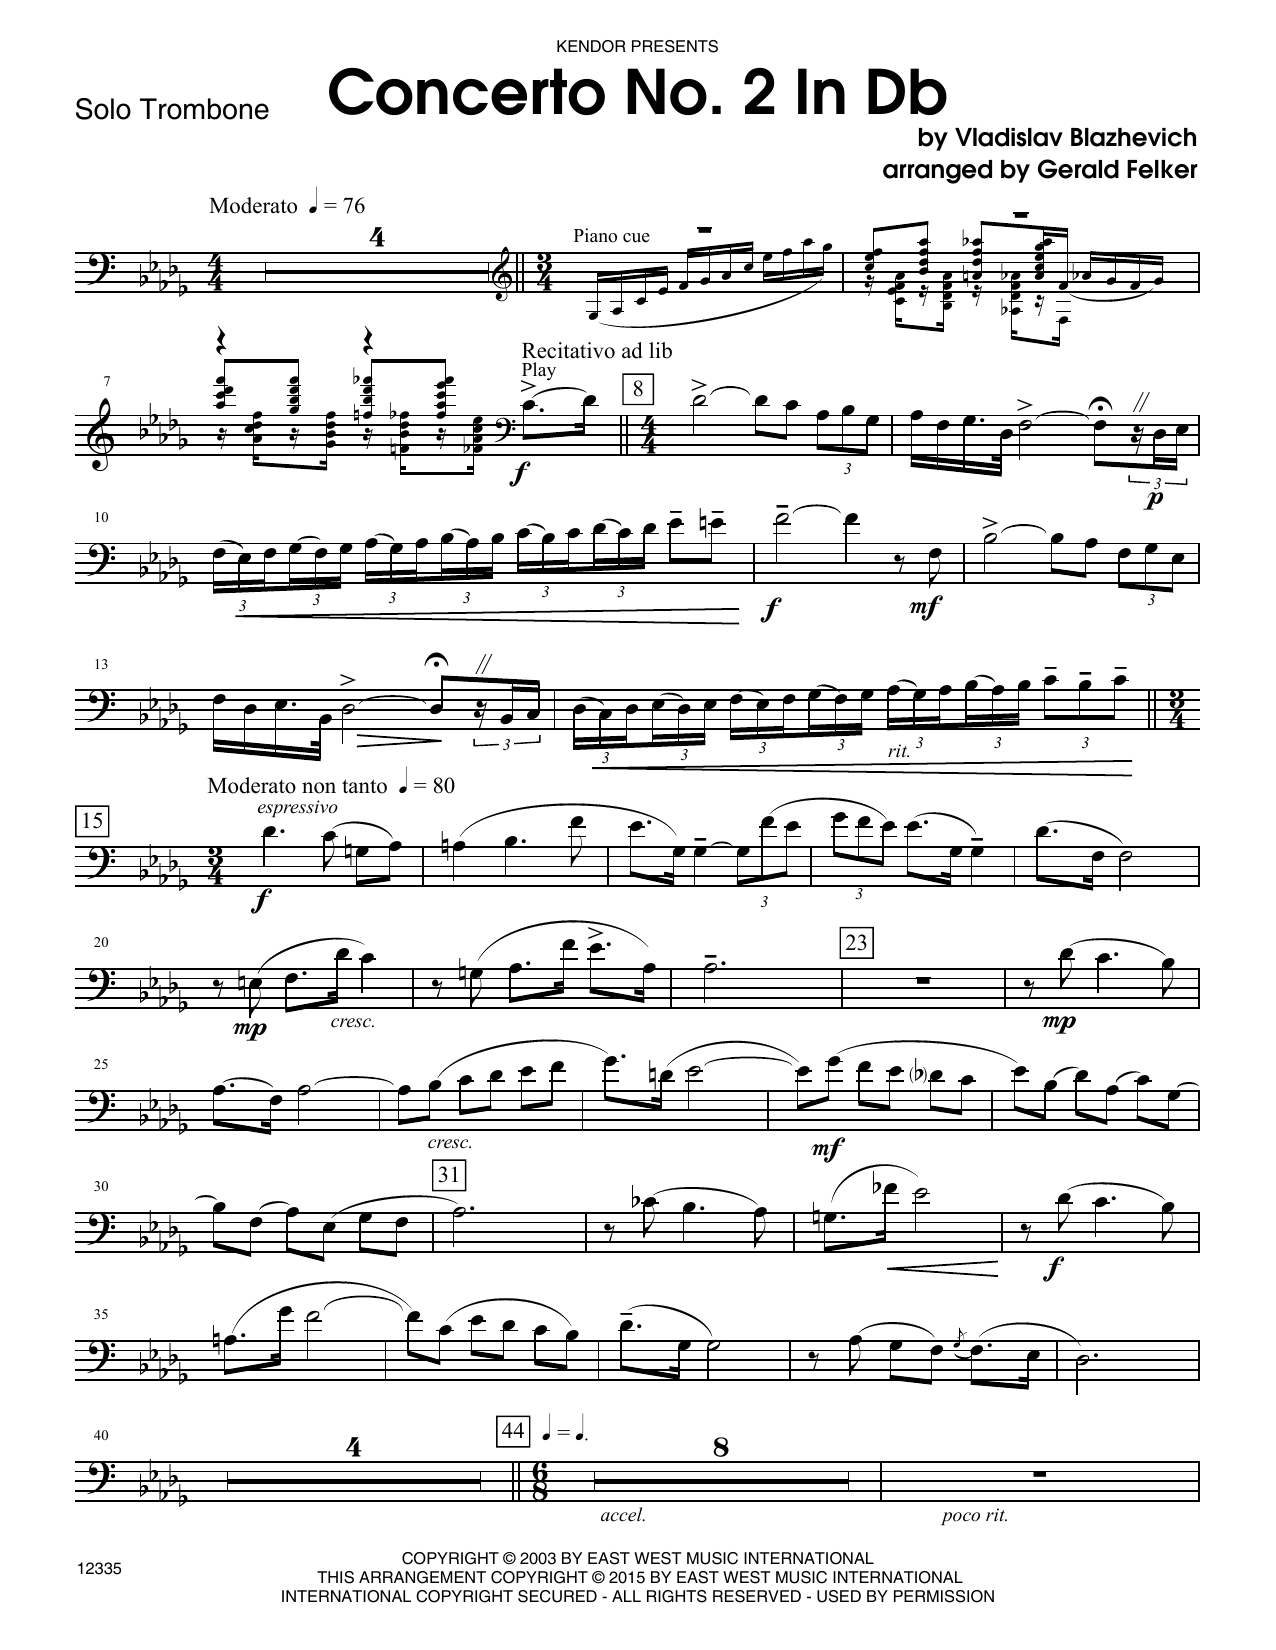 Concerto No. 2 In Db (complete set of parts) sheet music for trombone and piano by Gerald Felker. Score Image Preview.